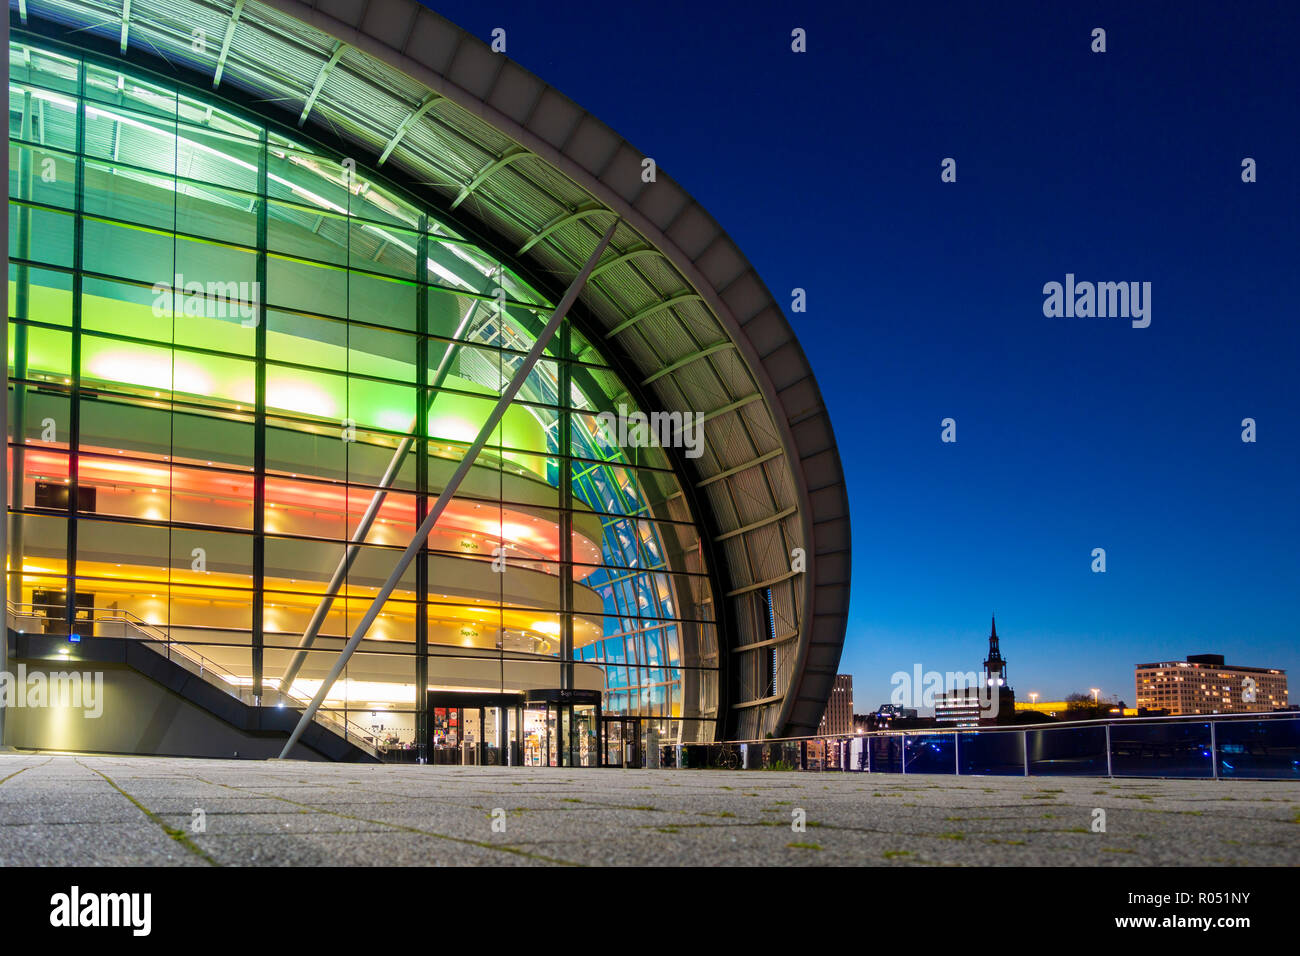 Sage Gateshead, Tyne and Wear, north east England, United Kingdom. - Stock Image